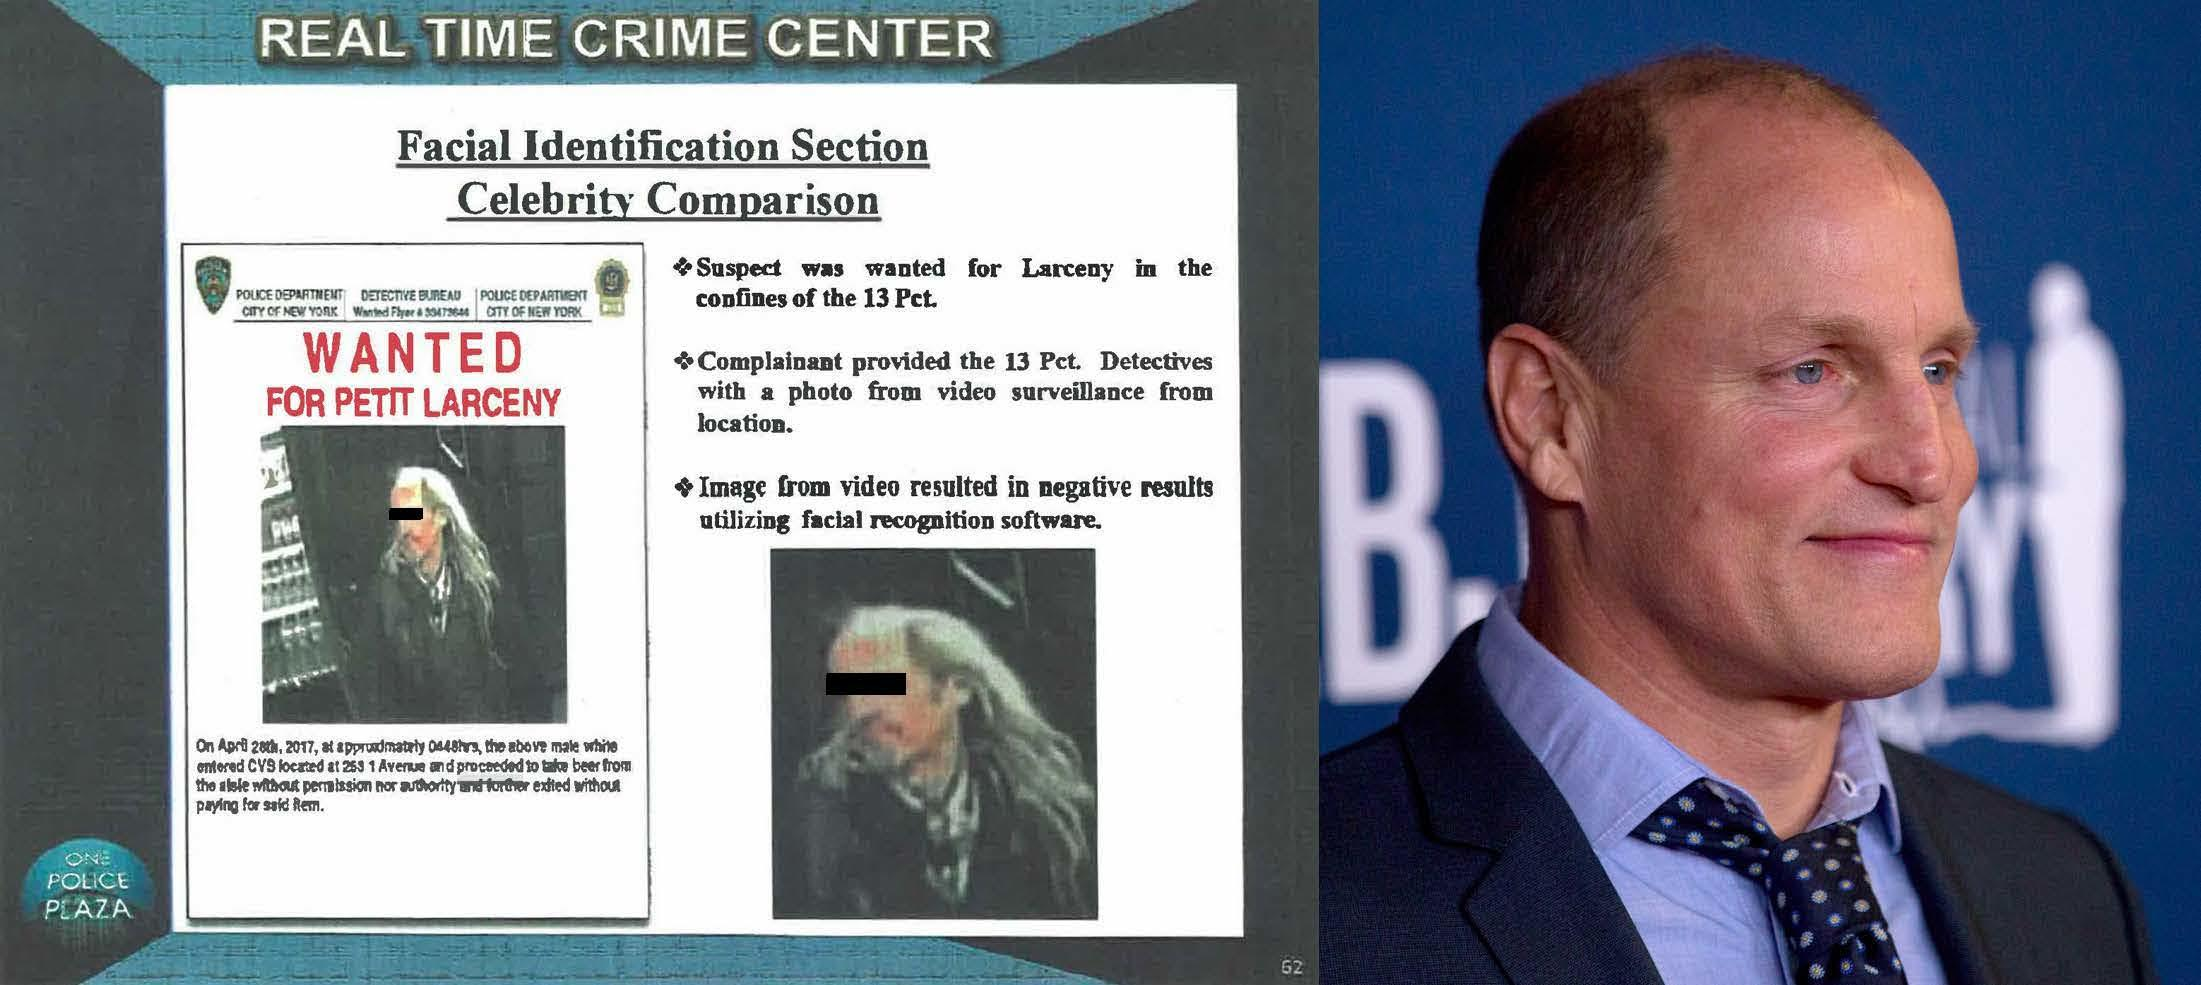 A wanted poster from the NYPD and a photo of actor Woody Harrelson